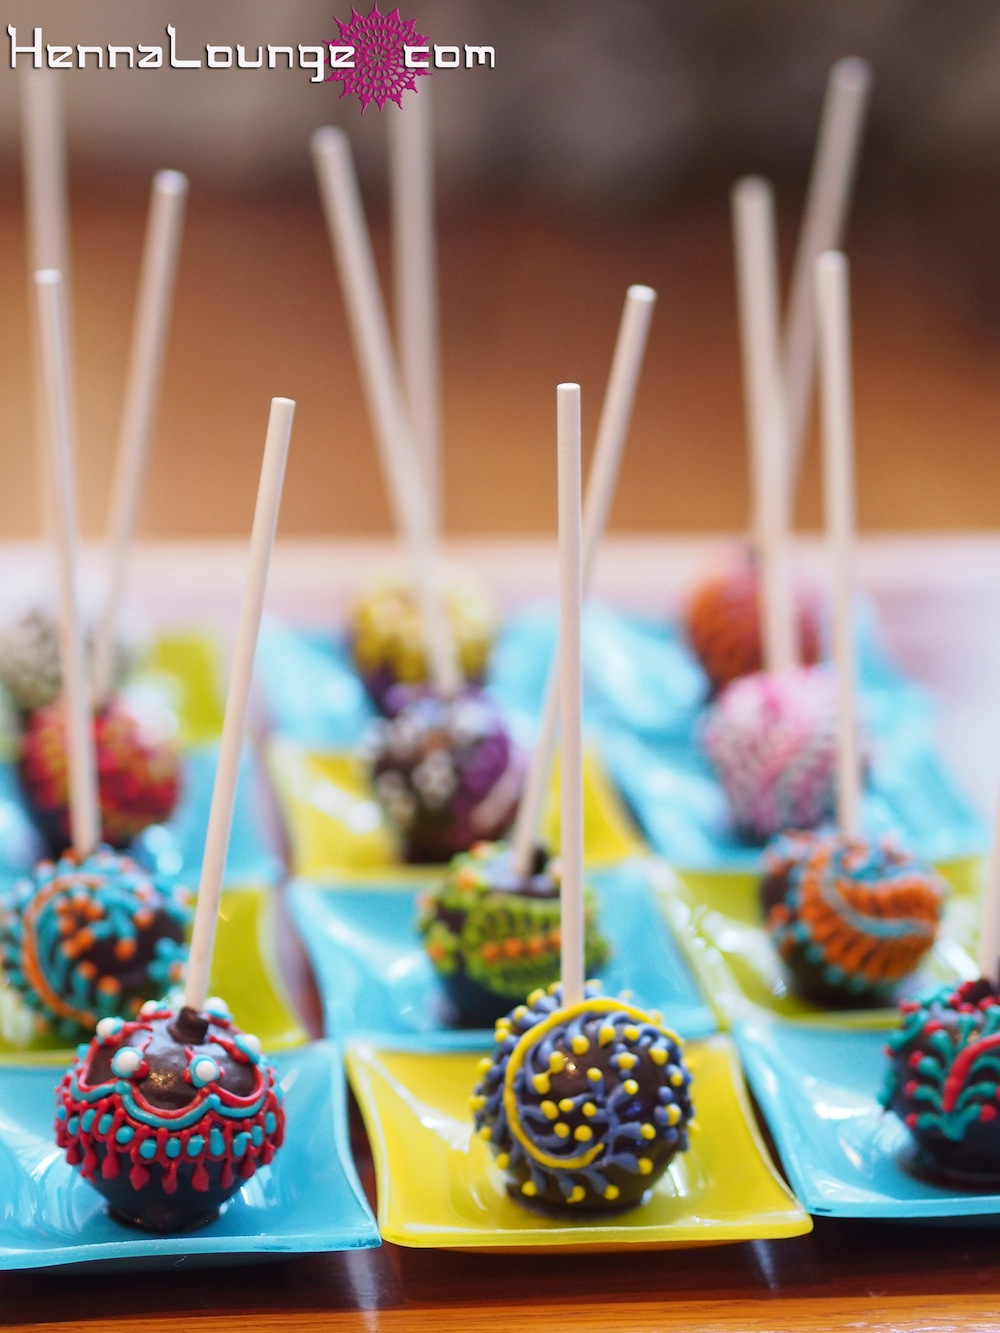 Cake-pop cuties.